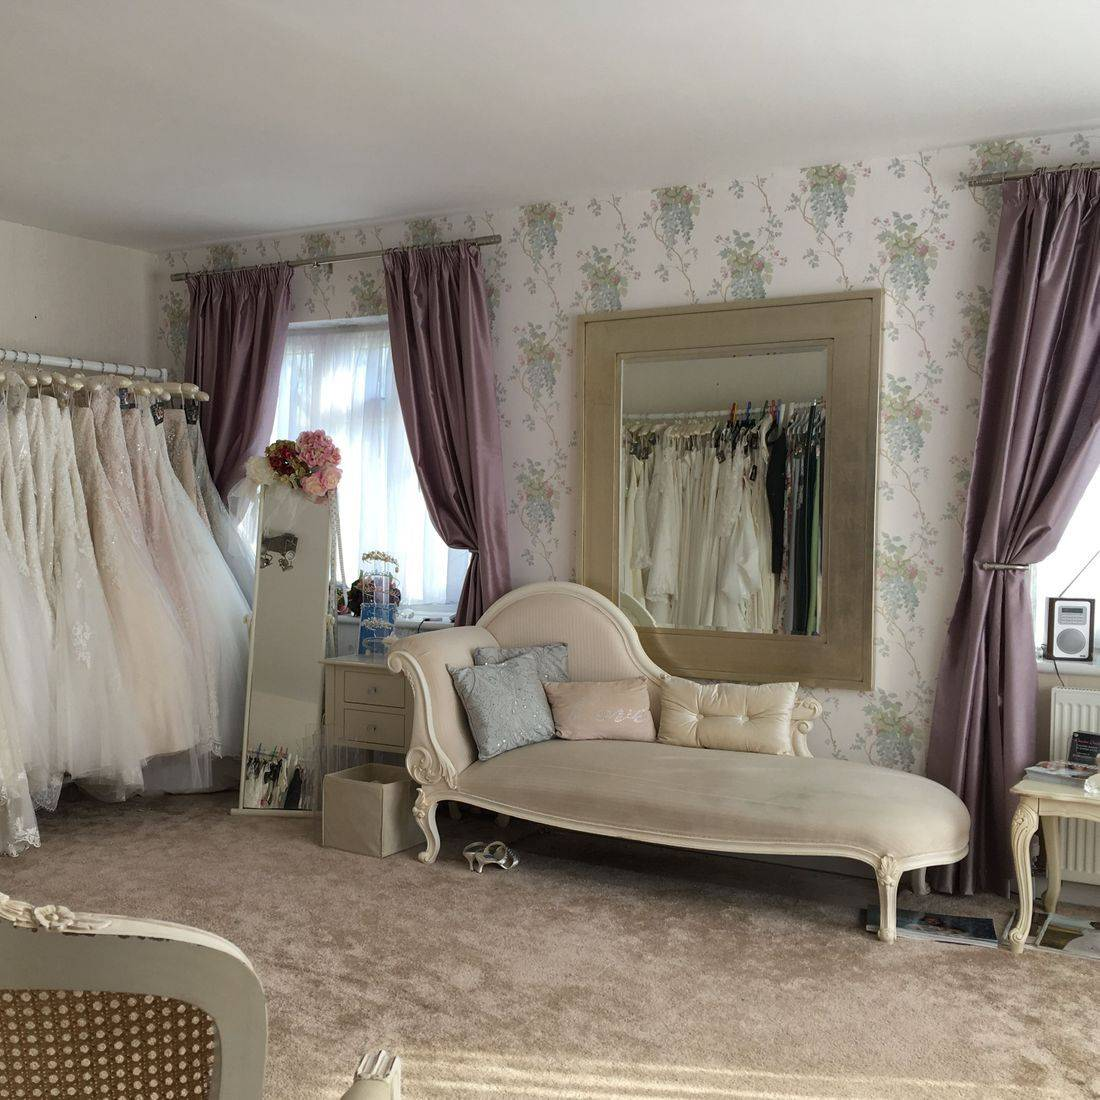 Bridal Shop near Bognor Regis and Worthing